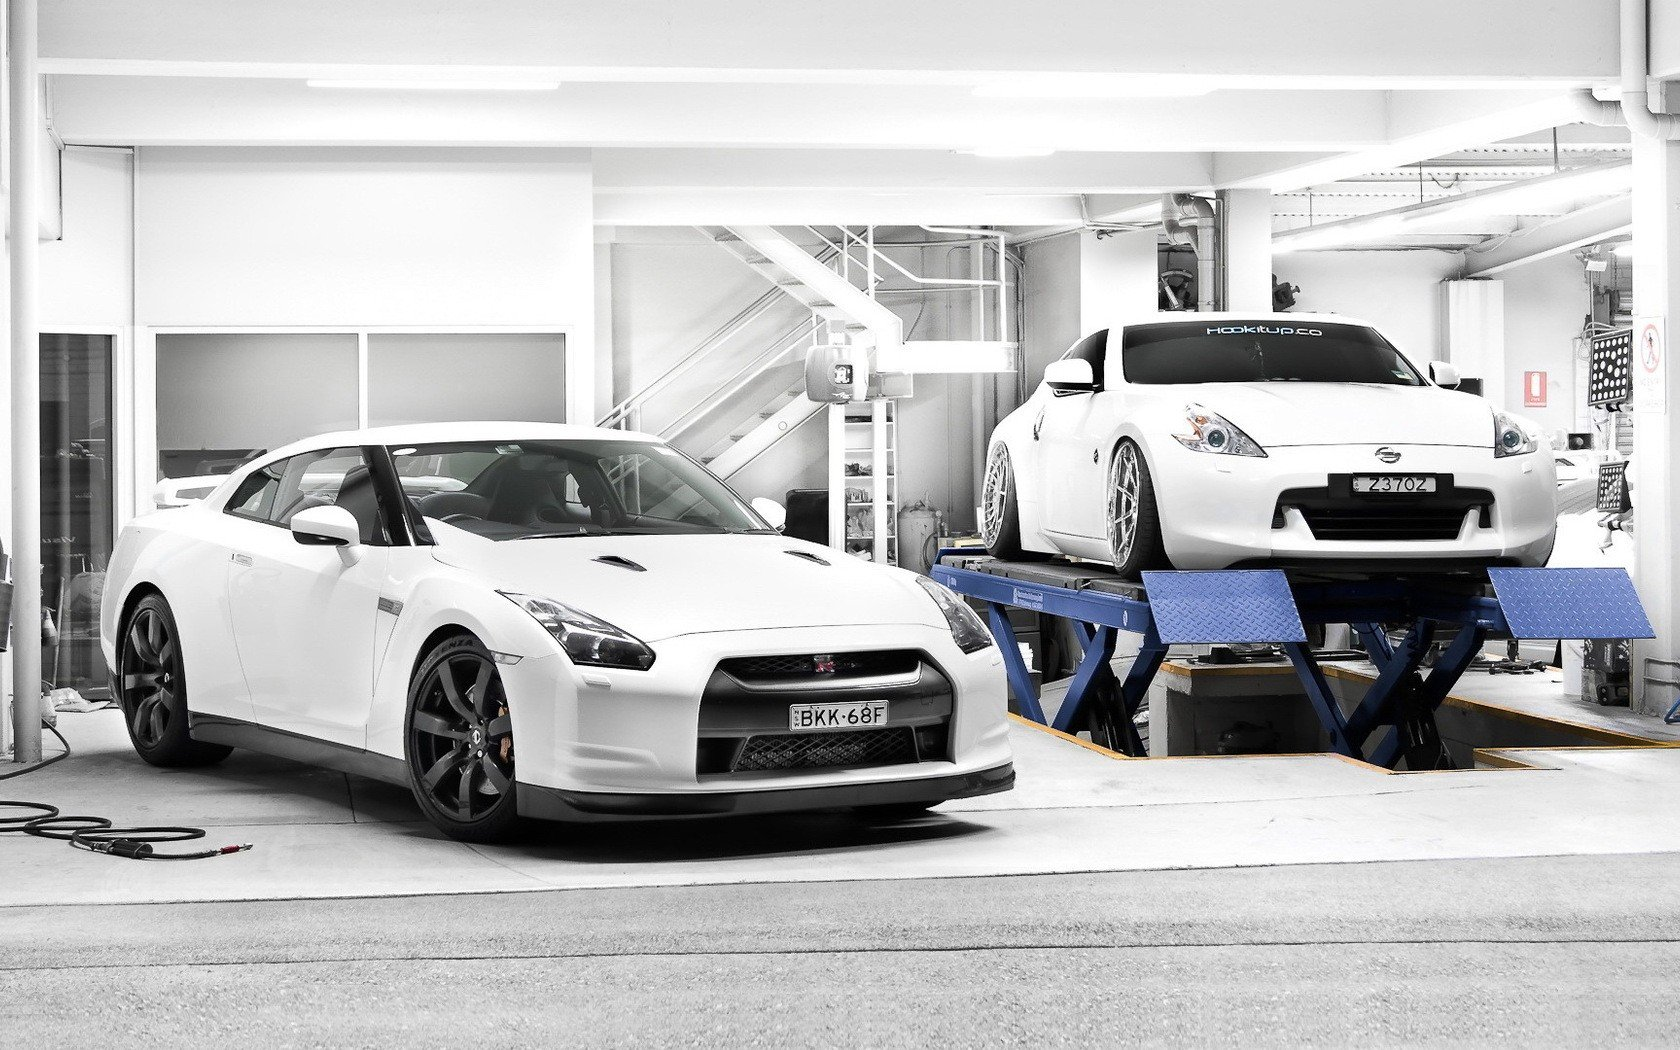 cars nissan garages nissan 370z white cars jdm japanese domestic market nissan gt r wallpaper. Black Bedroom Furniture Sets. Home Design Ideas